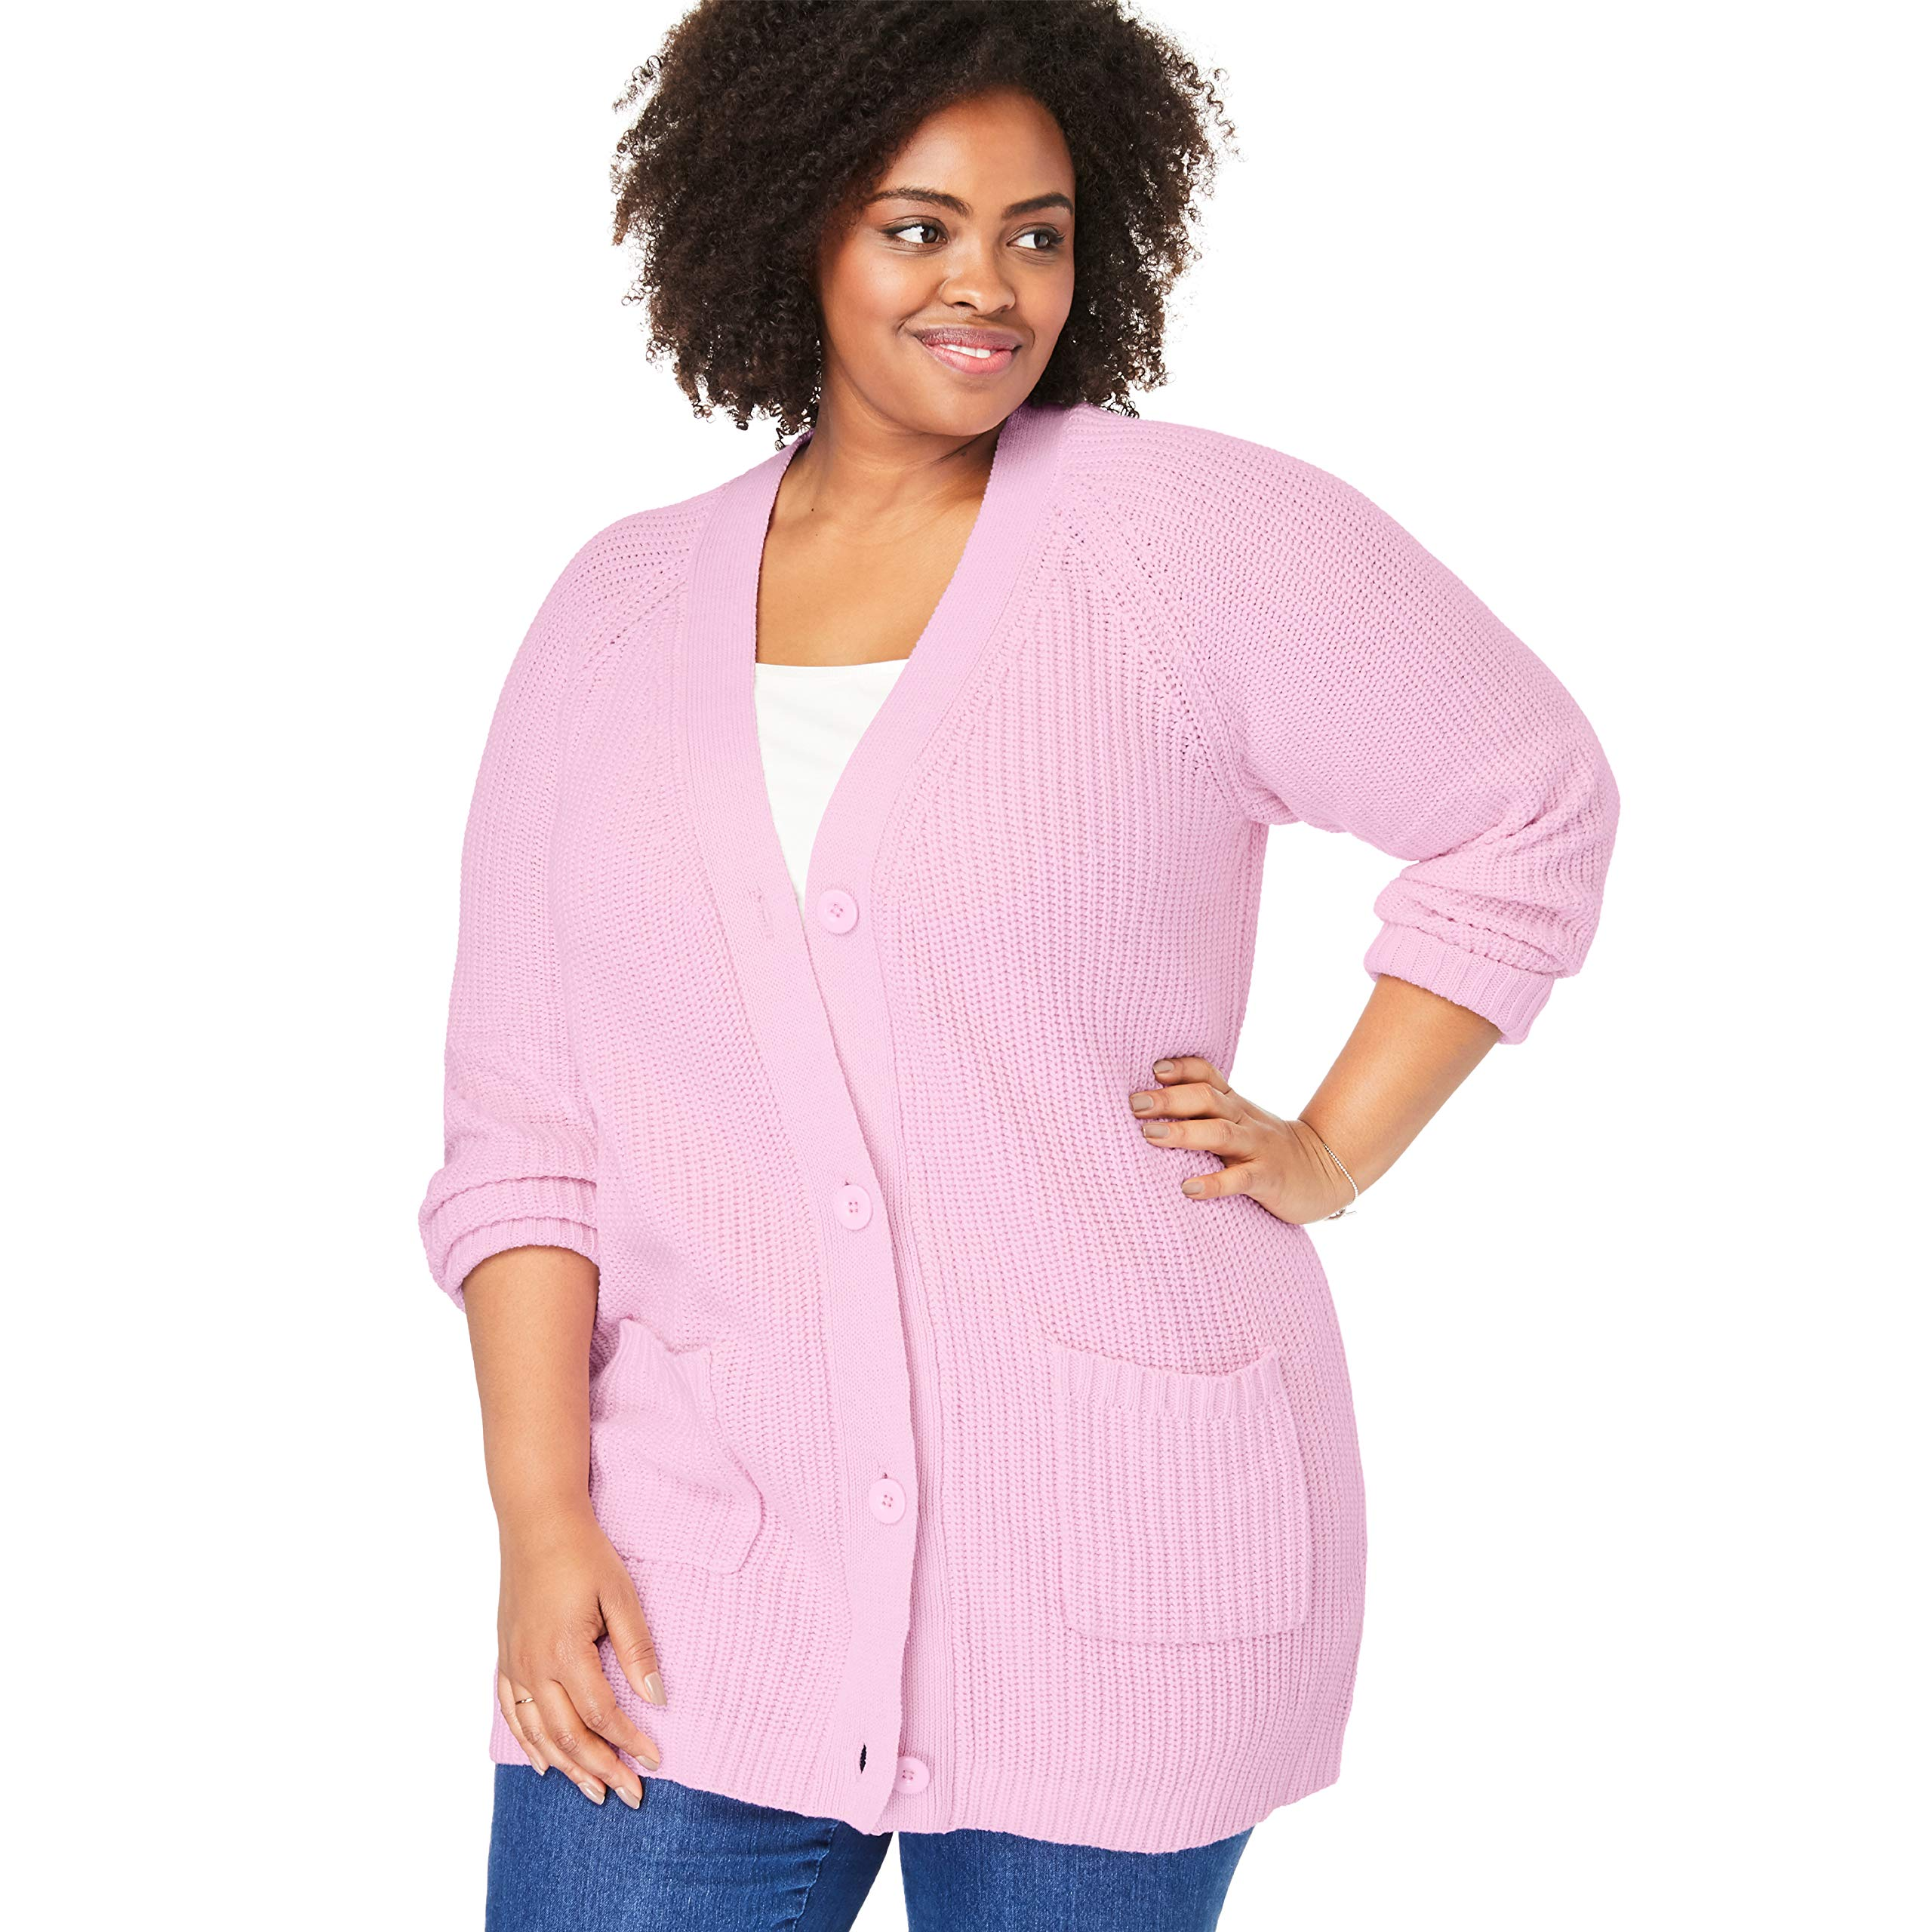 Woman Within Women's Plus Size Button Front Shaker Cardigan - Pink, 18/20 by Woman Within